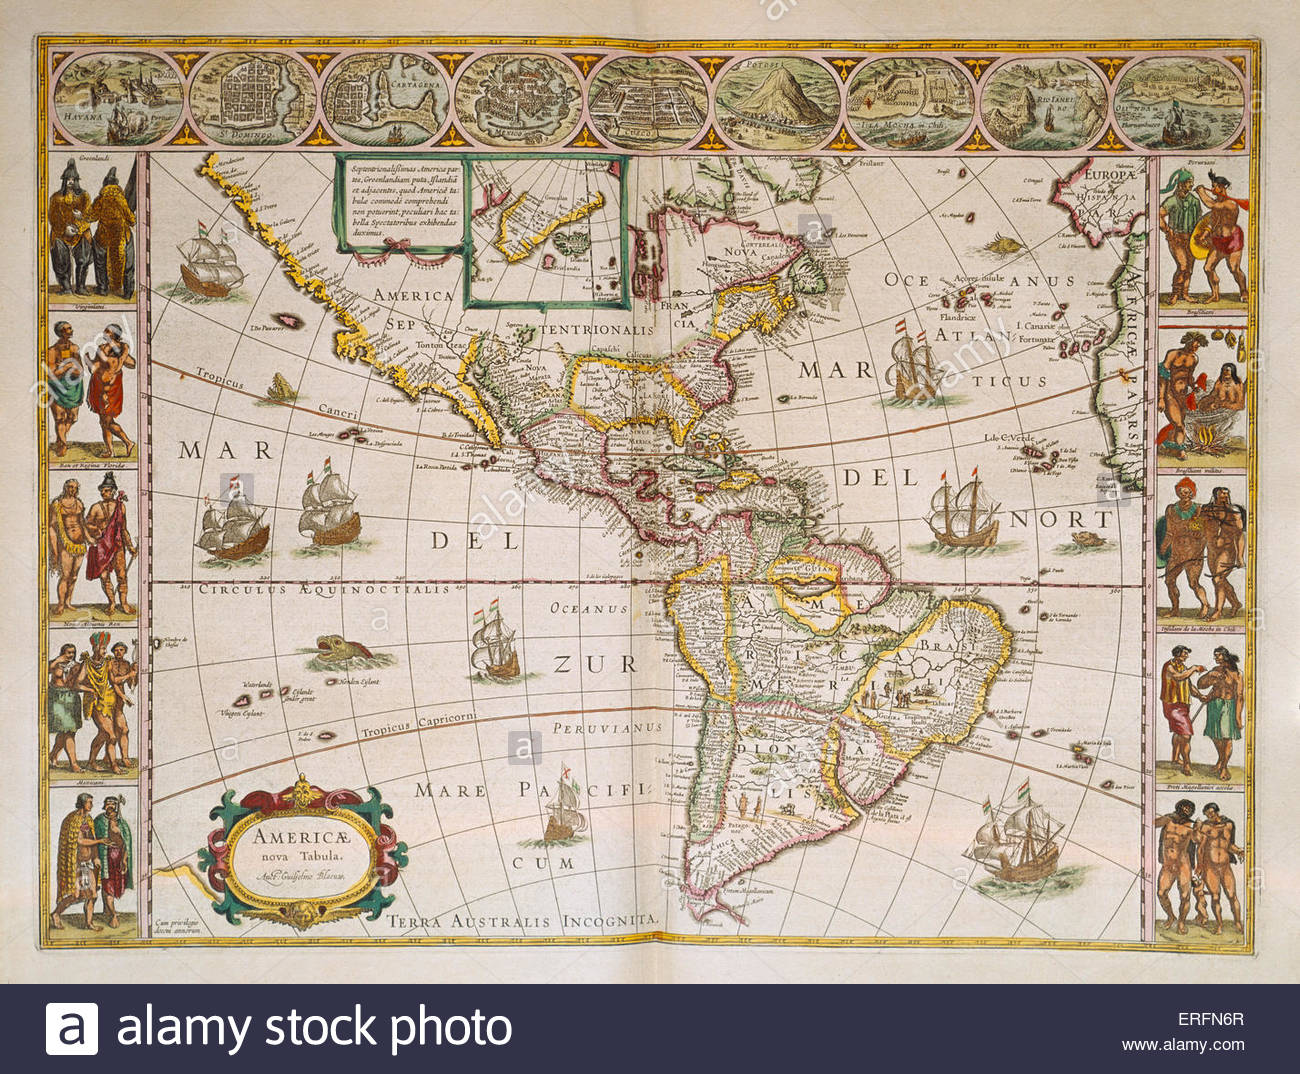 America 1638 Early 17th century map by Dutch cartographer Willem Blaeu (1571 - 21 October 1638).   Courtesy of the - Stock Image